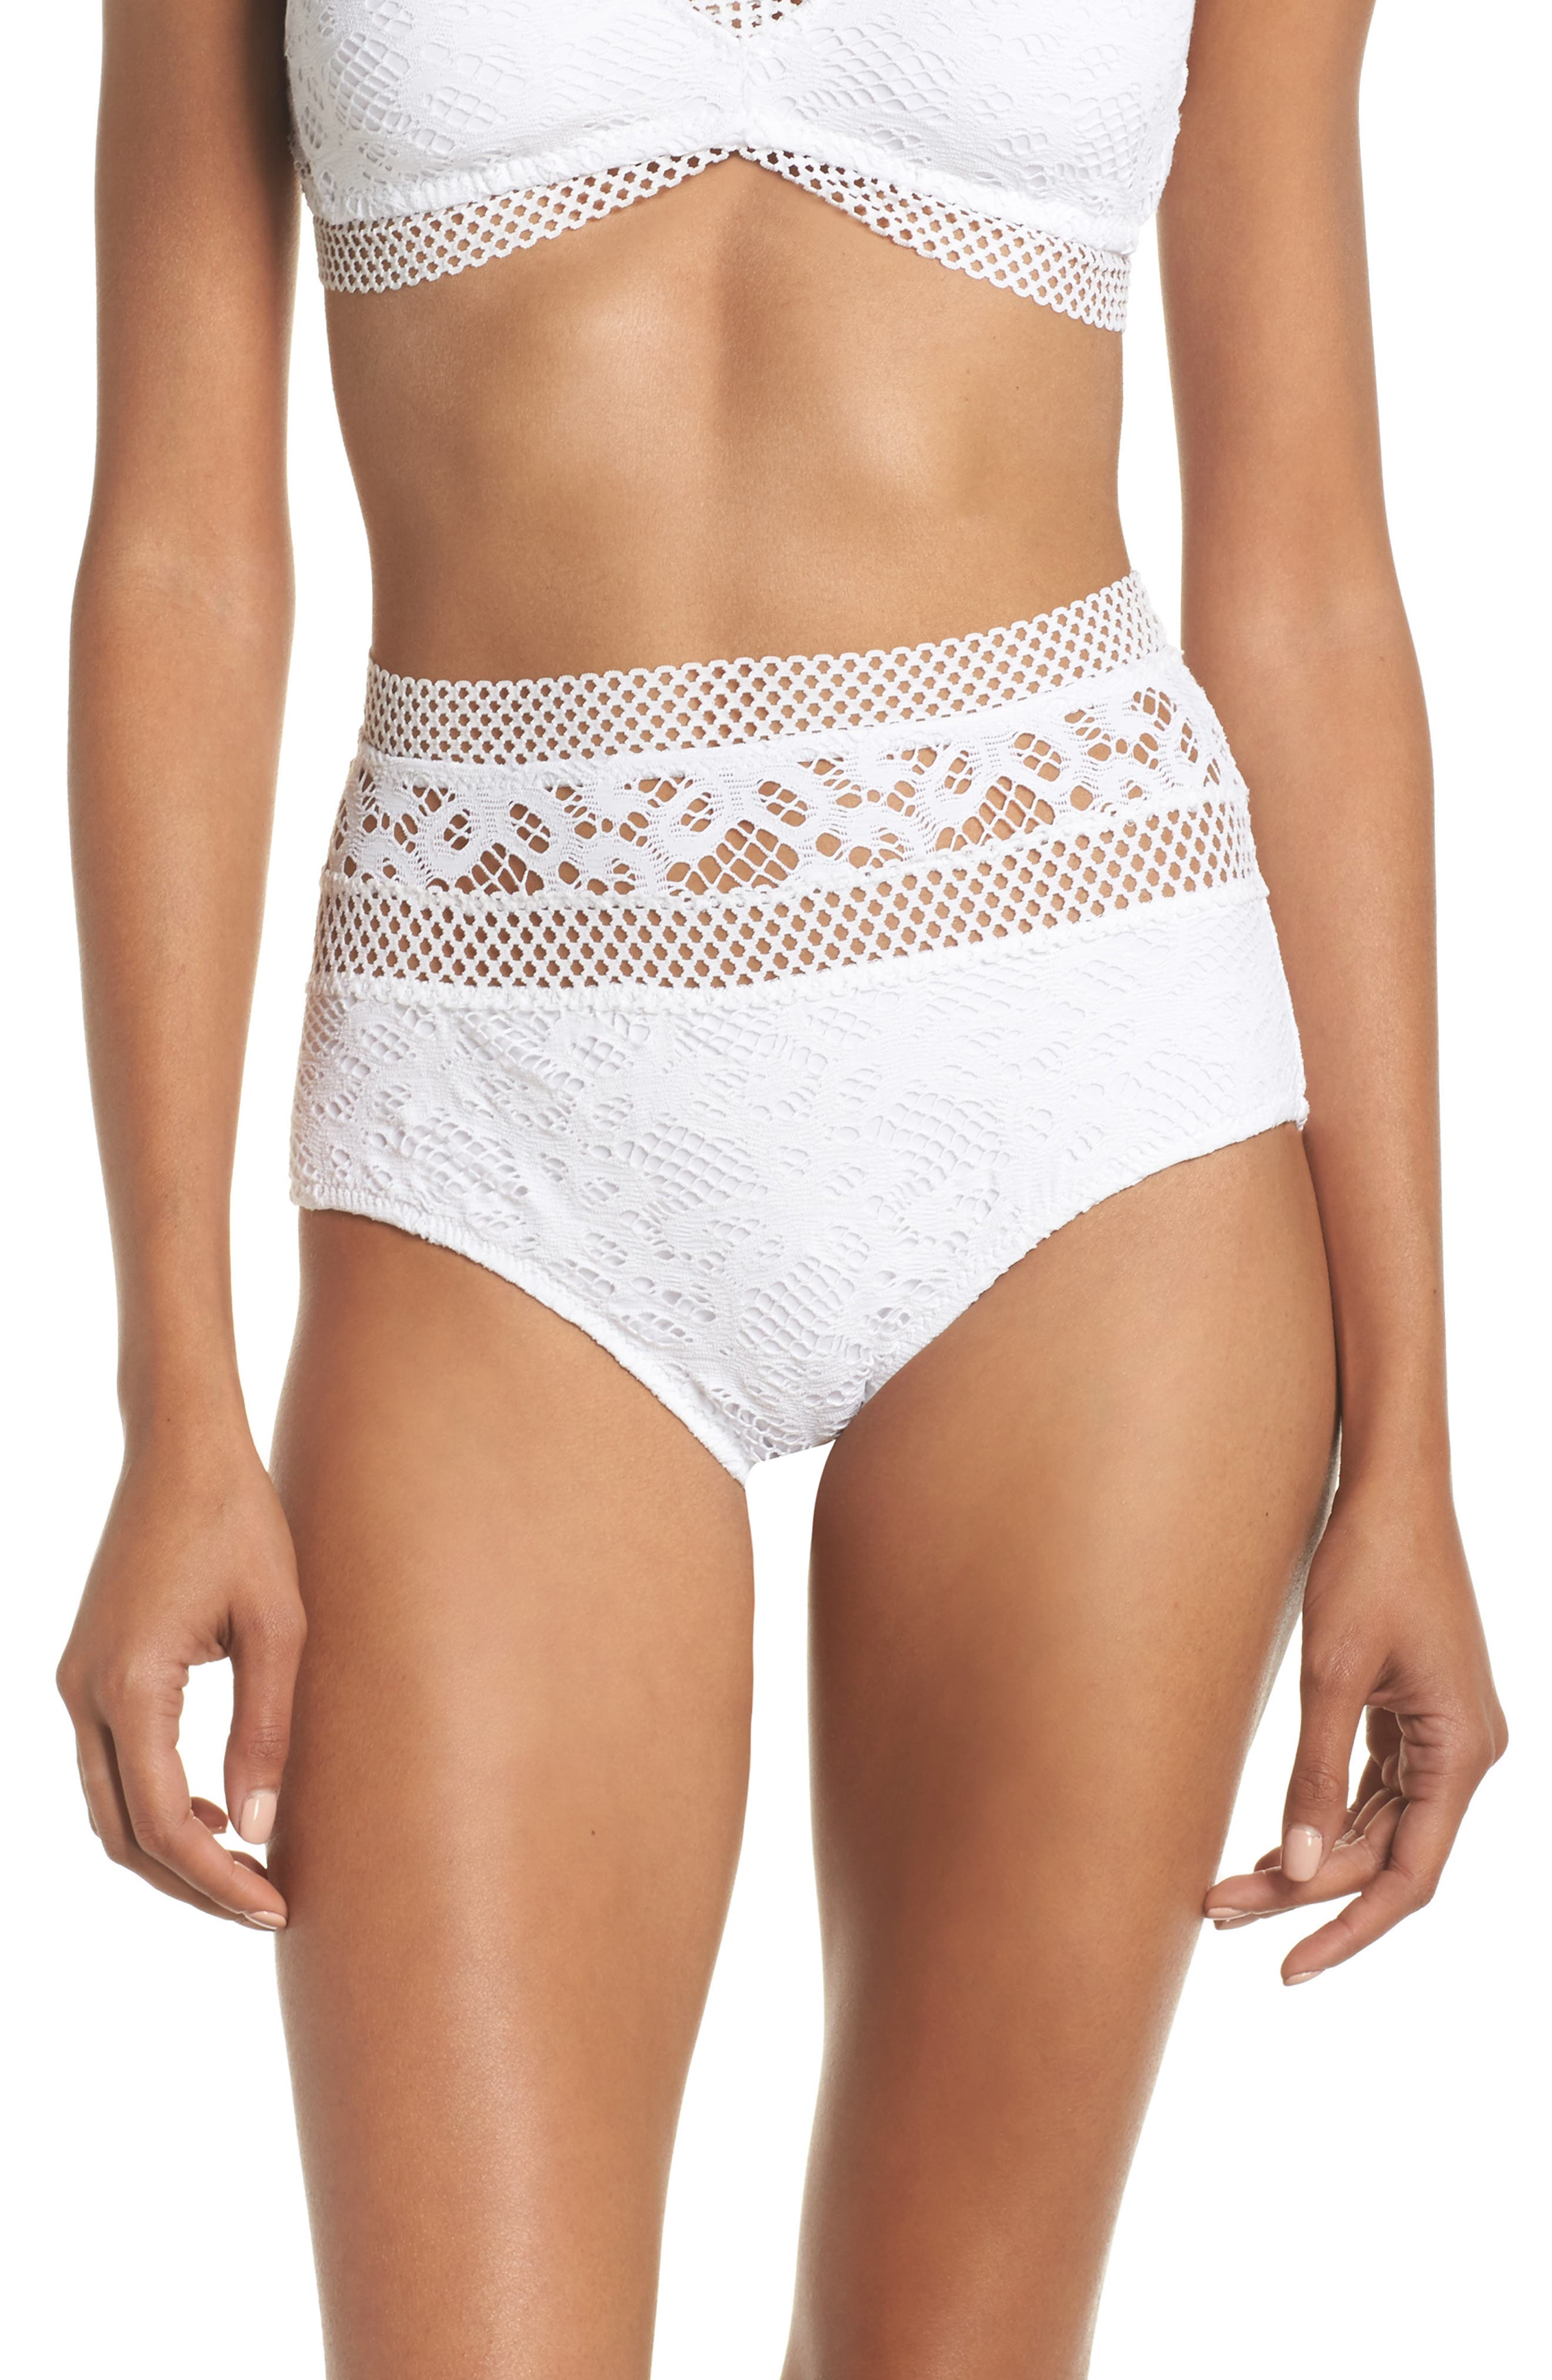 Captured High Waist Bikini Bottoms,                         Main,                         color, White